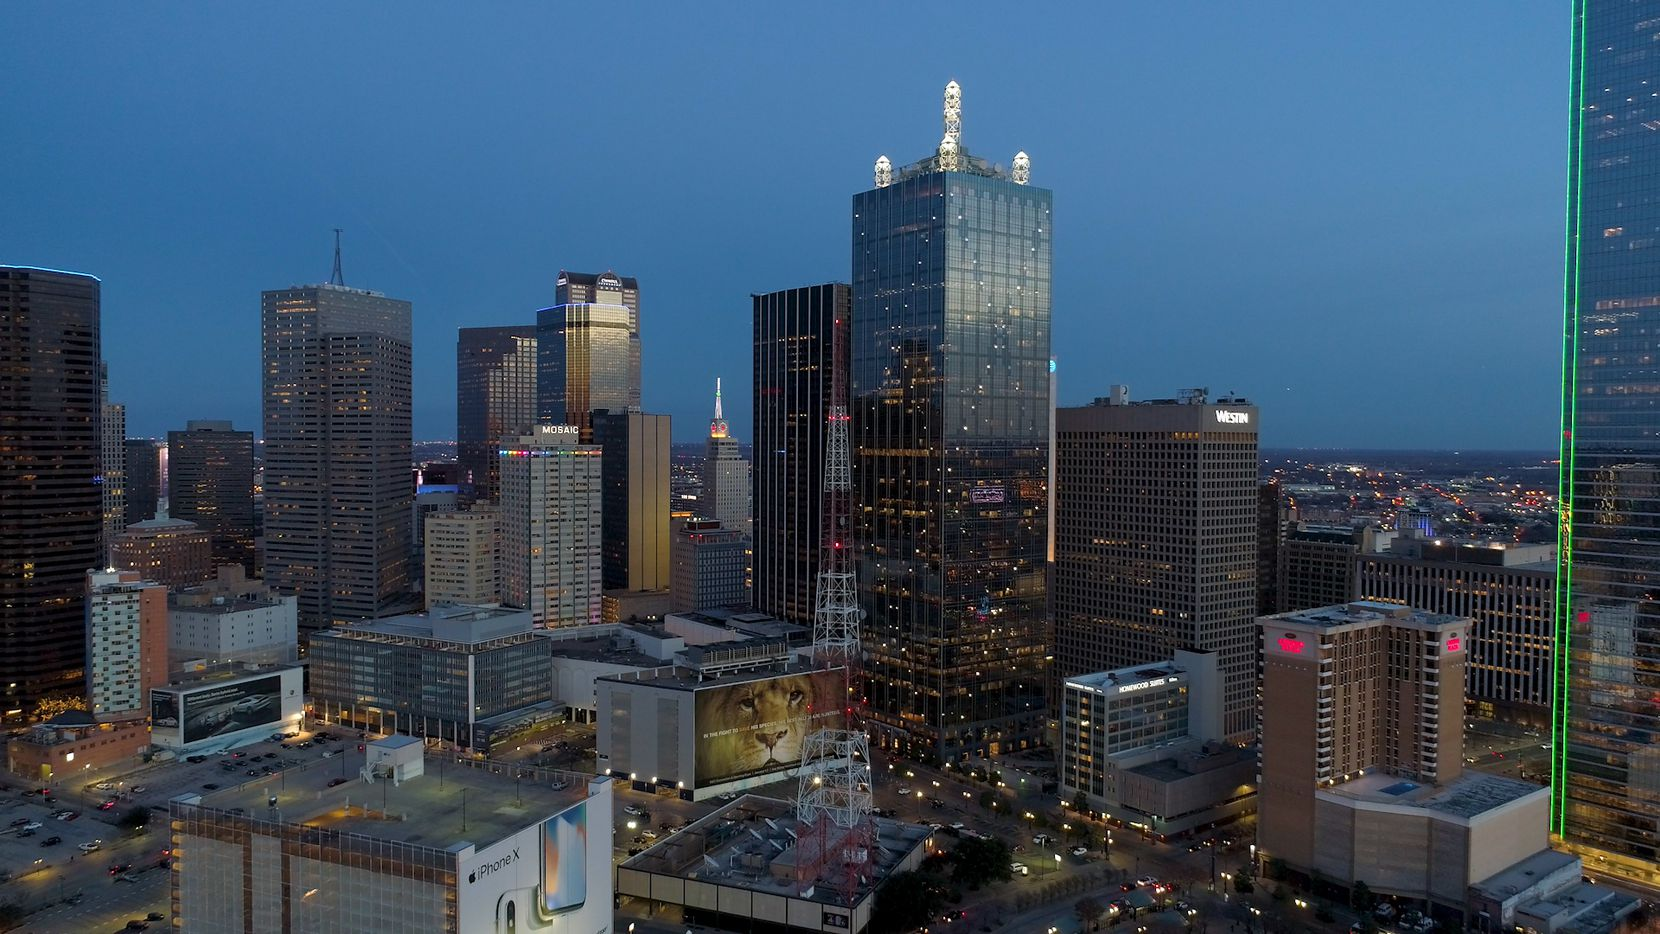 Downtown Dallas' 56-story Renaissance Tower with its lighted towers on the roof is one of the city's biggest office buildings. The building is currently facing foreclosure after defaulting on its loans.